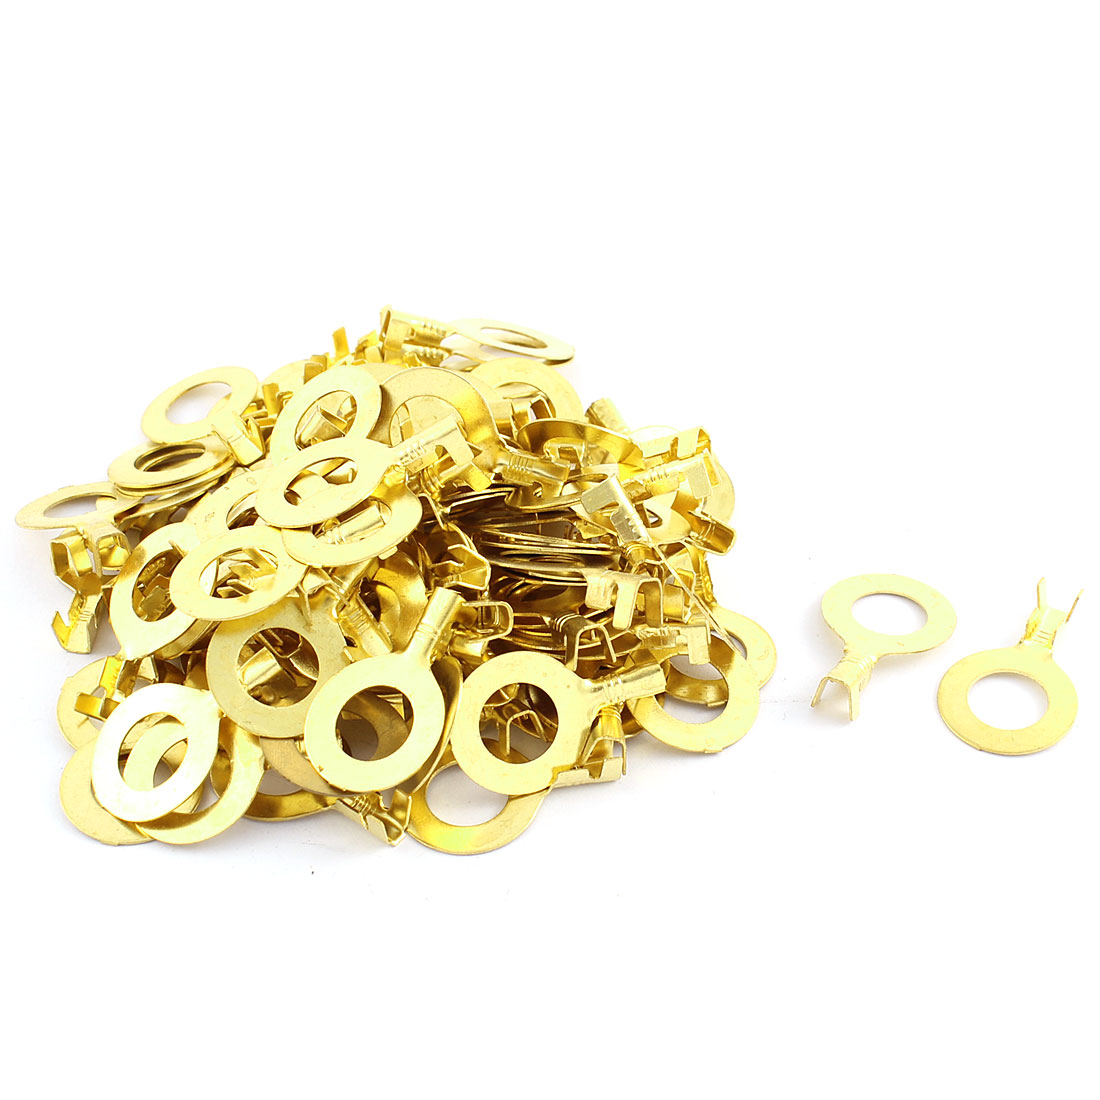 100 Pcs 5mm Dia Wire Non Insulated Ring Crimp Terminal Connectors 10mm